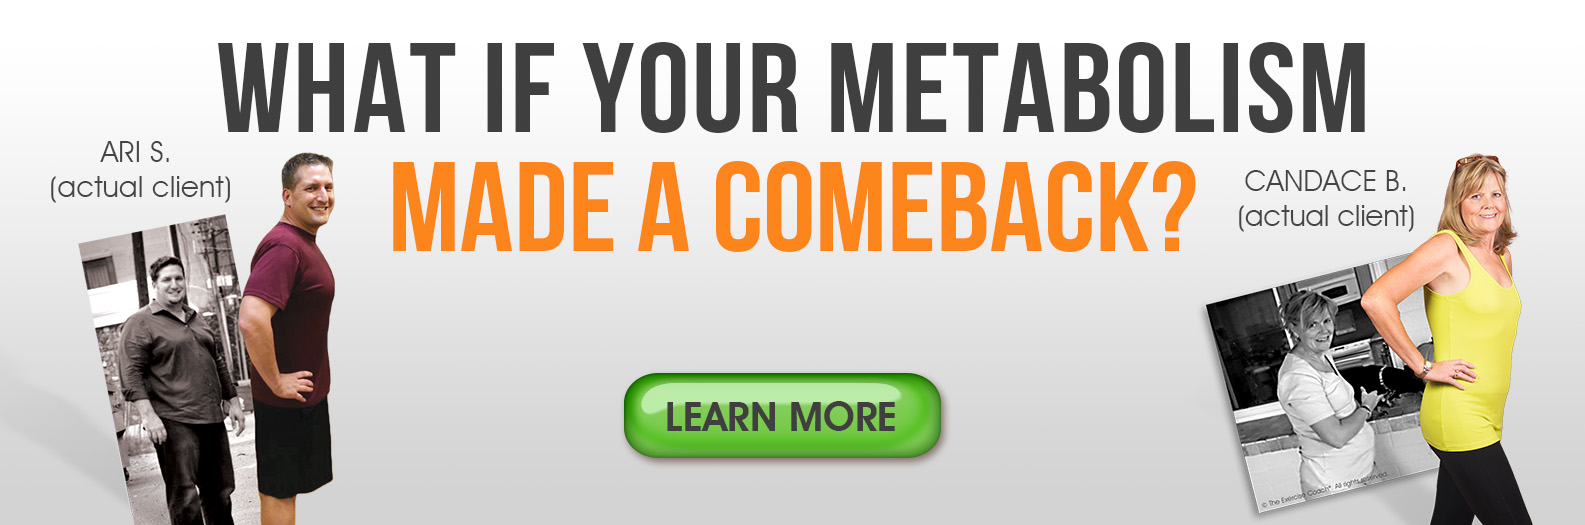 Metabolism-Made-a-Comeback_Web-Banner-1